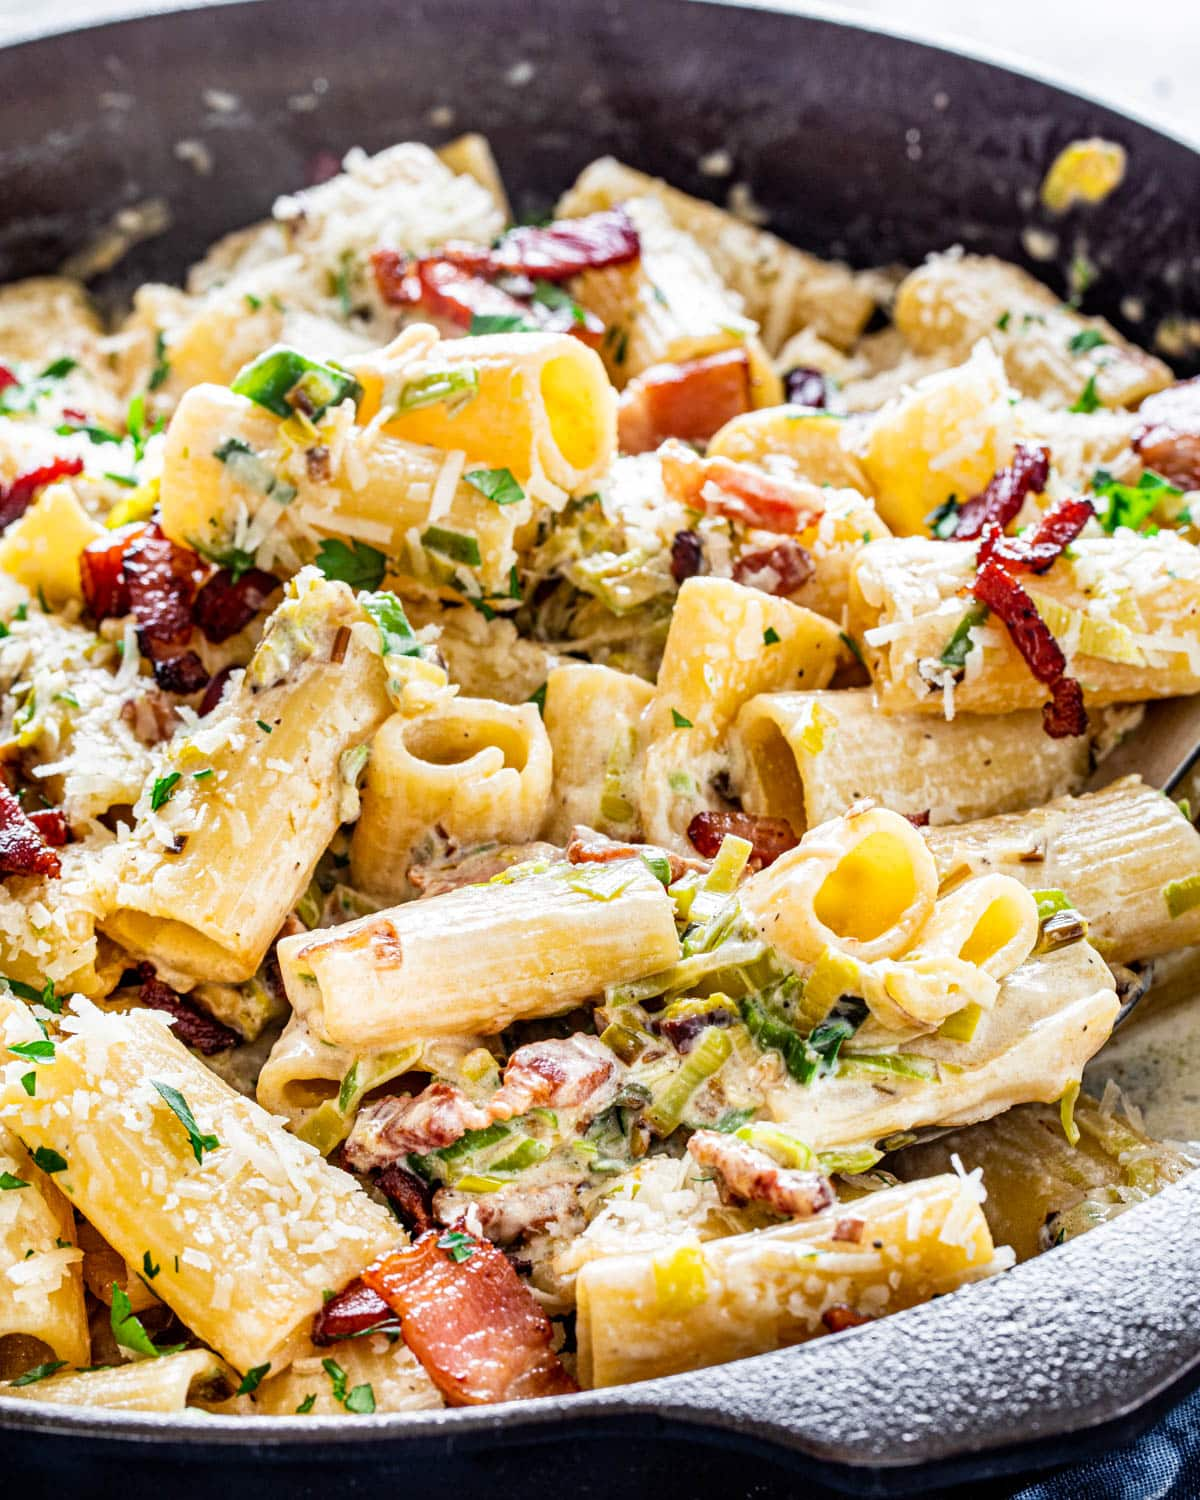 rigatoni in a creamy bacon and leek sauce in a black skillet